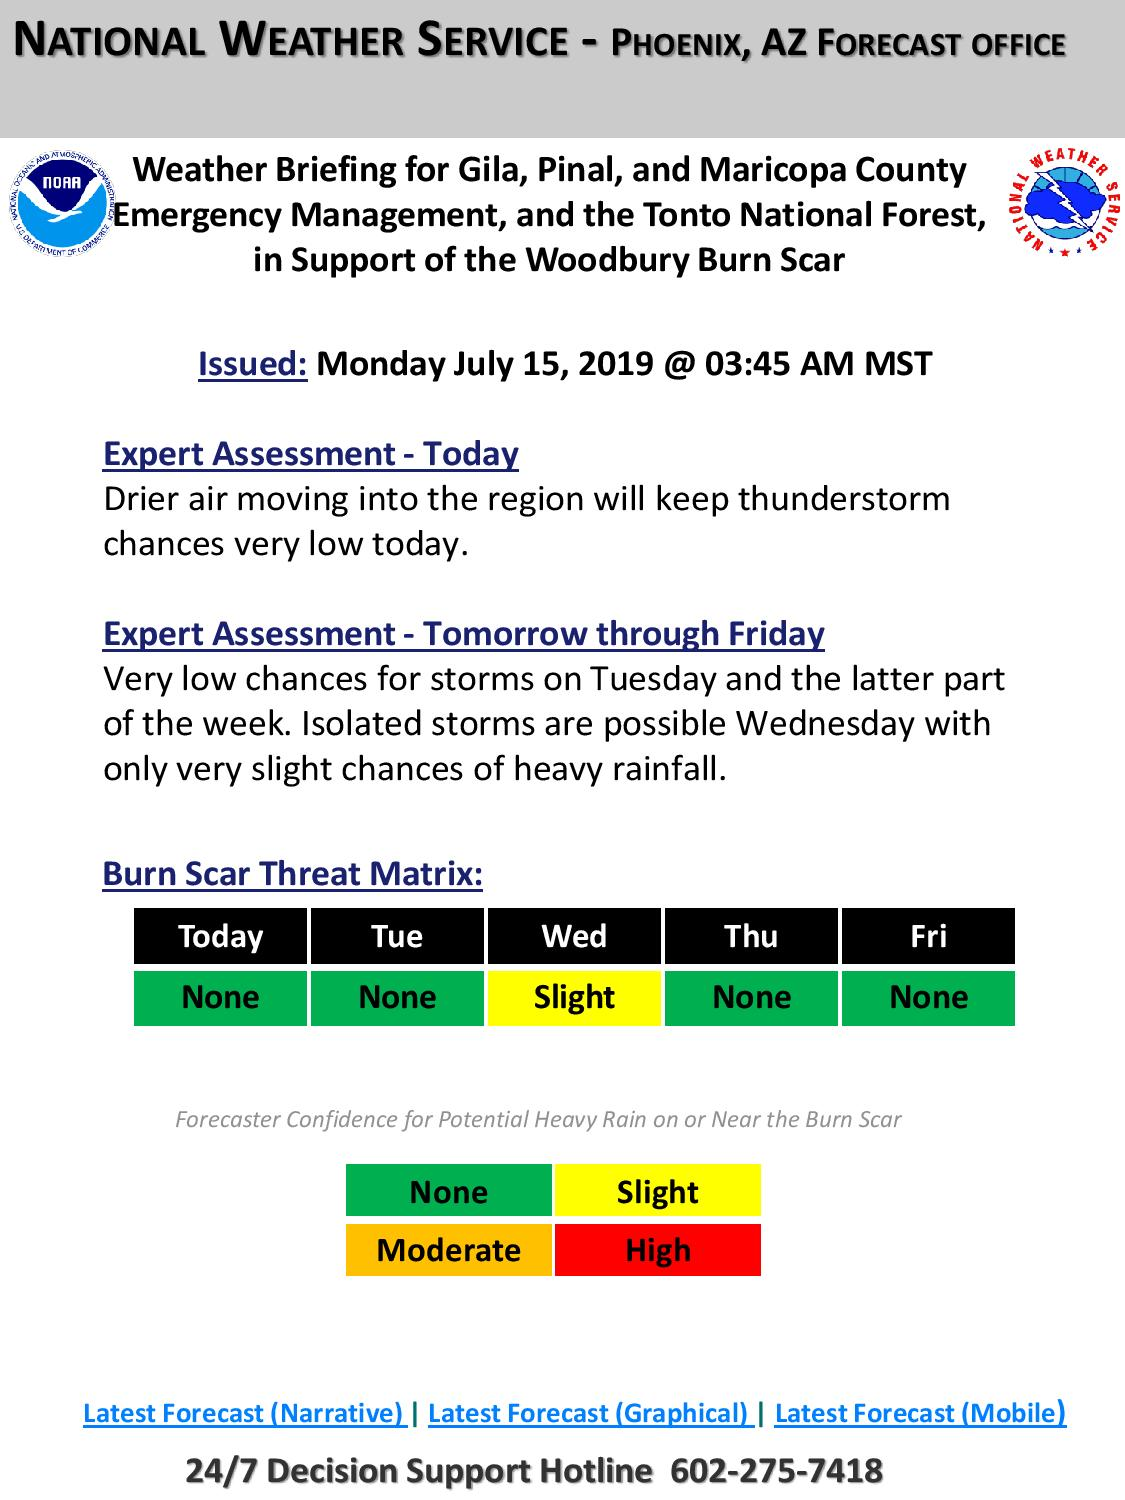 Woodbury Fire Weather Briefing from National Weather Service